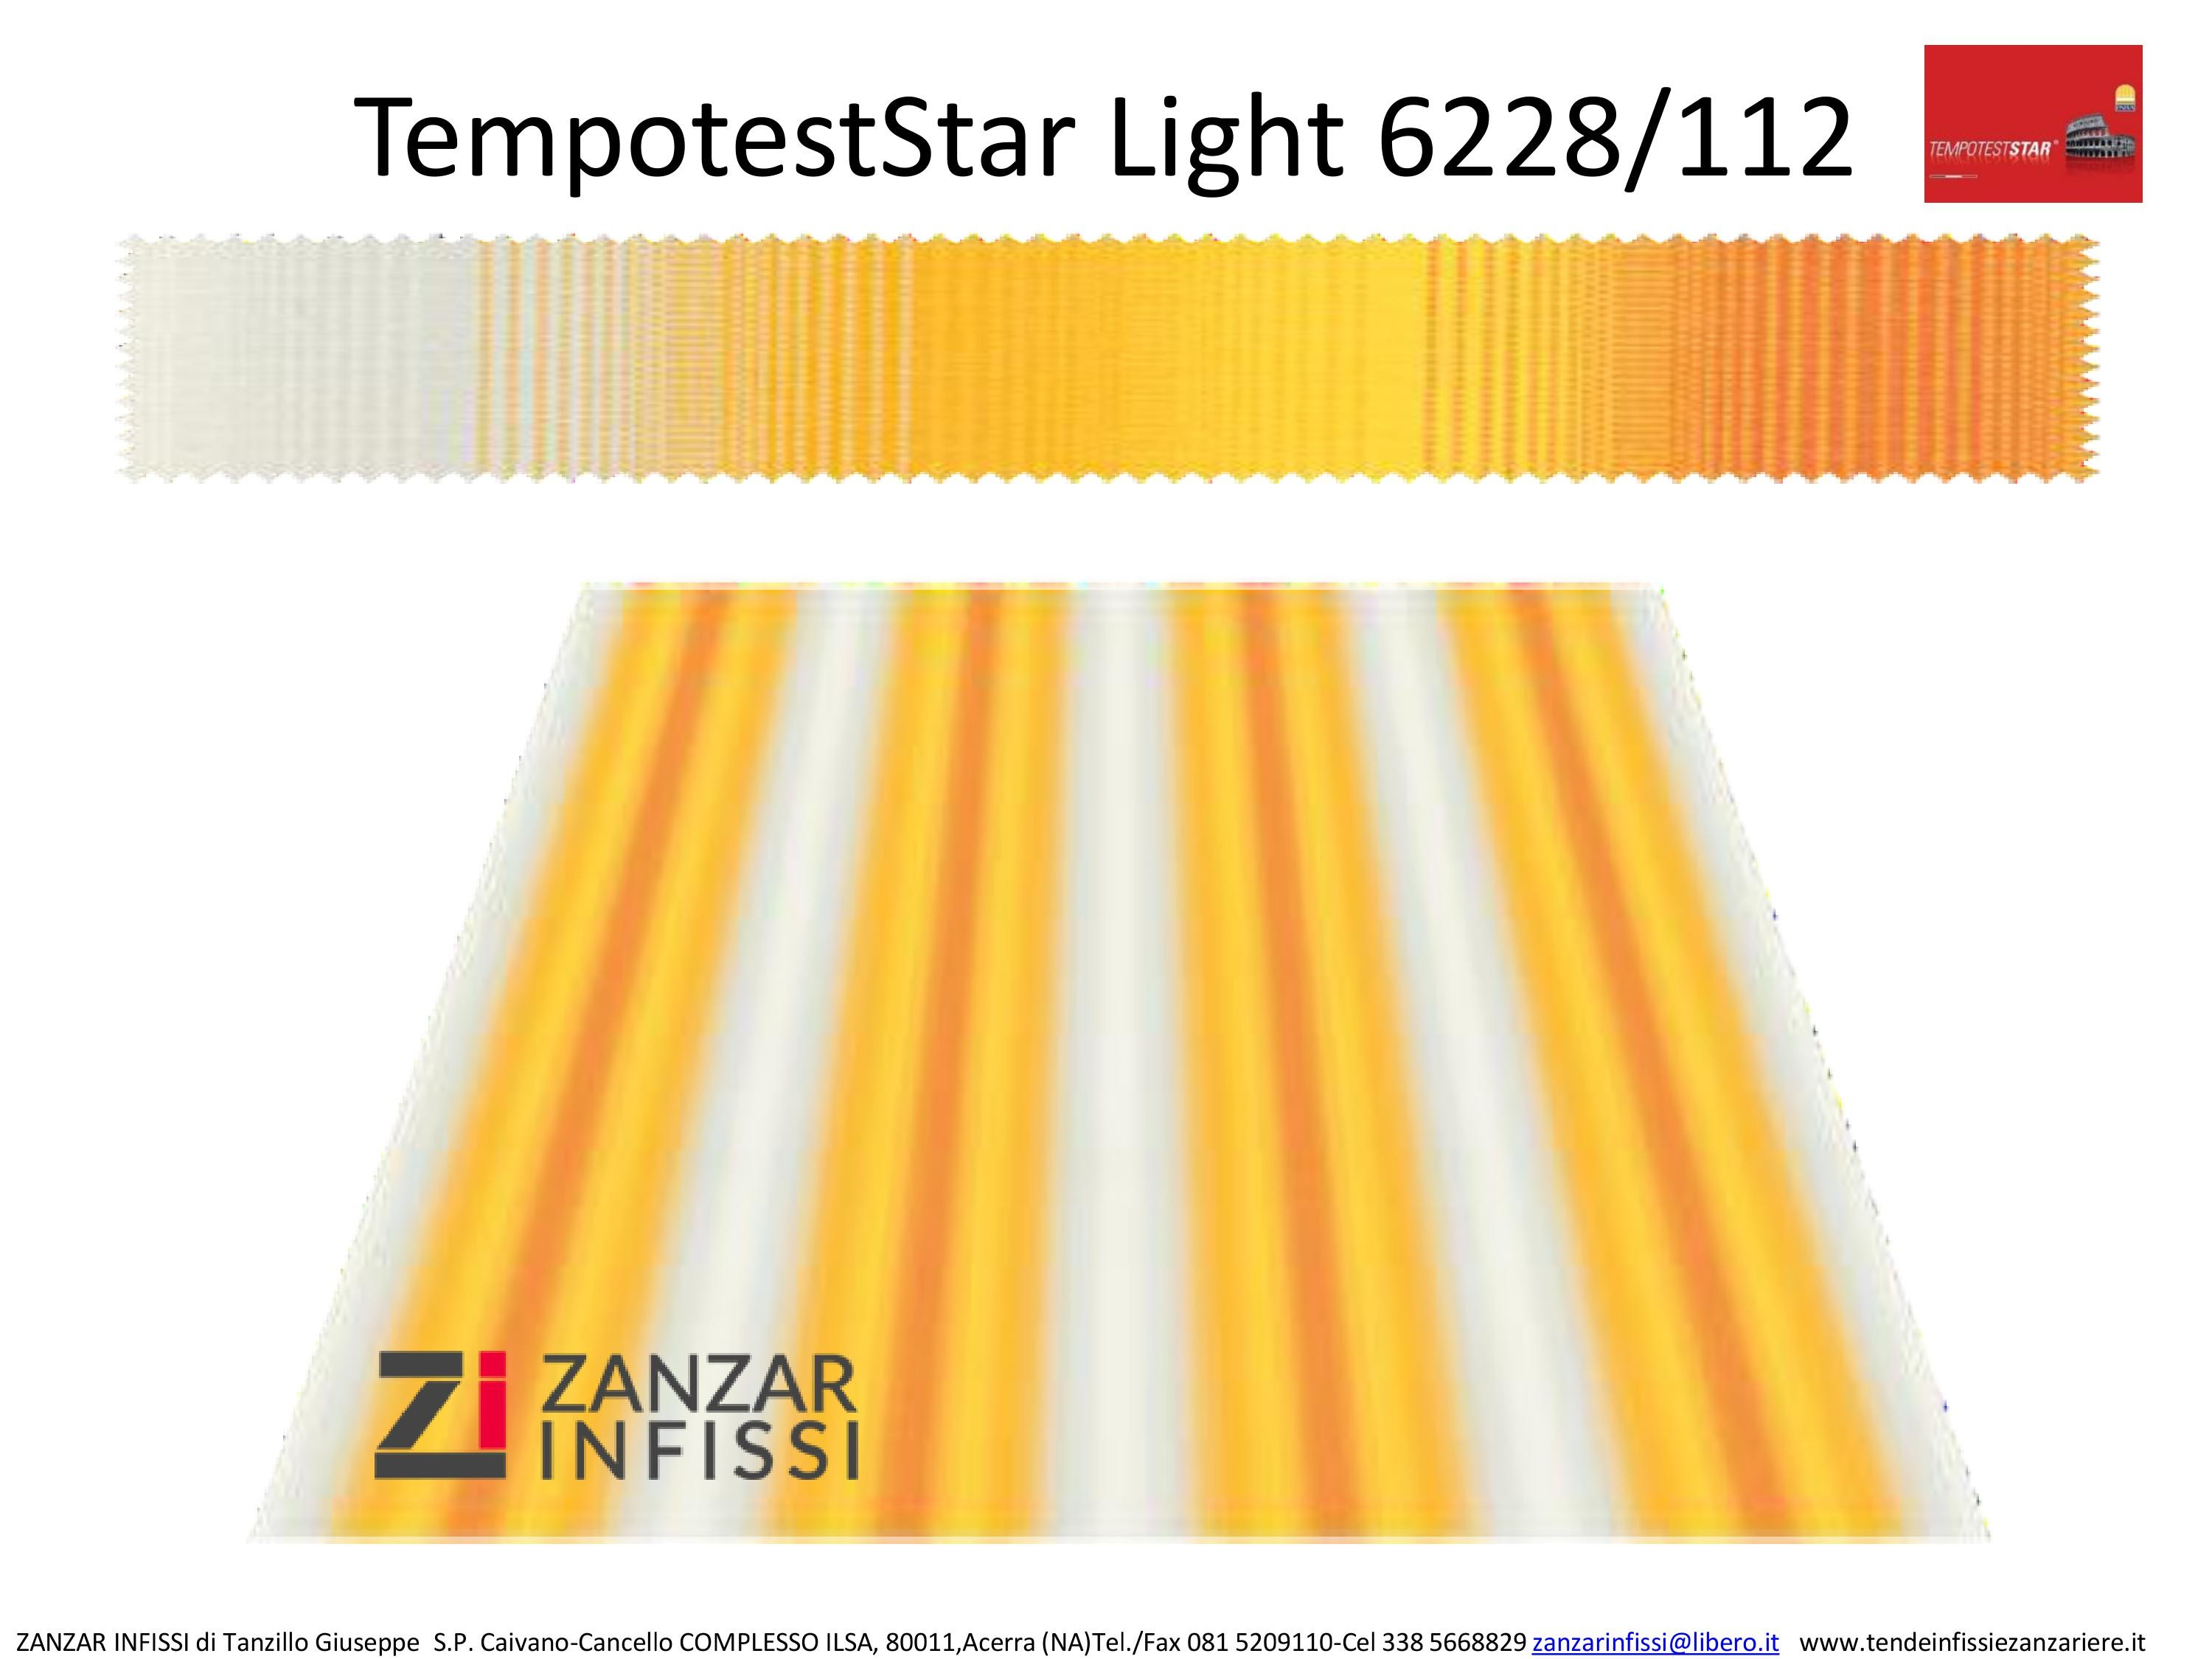 Tempotest star light 6228/112